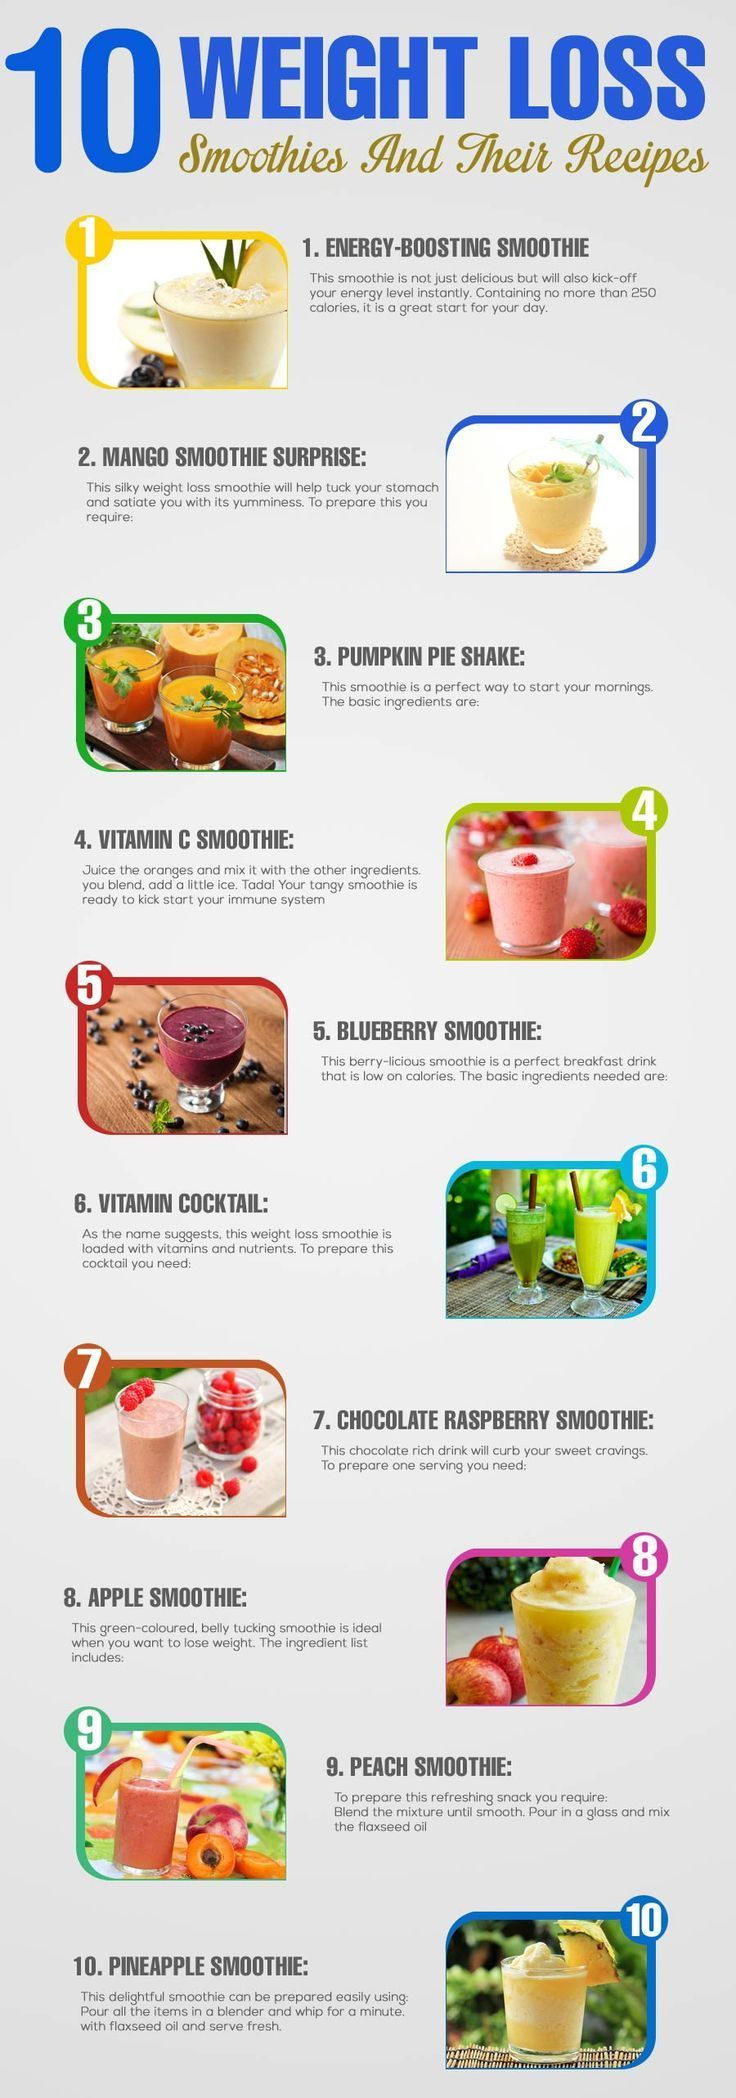 "How to make healthy smoothies at home to lose weight 25 Healthy Green Smoothie Recipes for Weight Loss ""I tried to pick the healthiest, easiest and most tasty healthy green smoothie recipes for weight loss…"" Top 10 Weight Loss Smoothies And Their Recipes ""The nutritious & delicious way of losing fat is by including …"